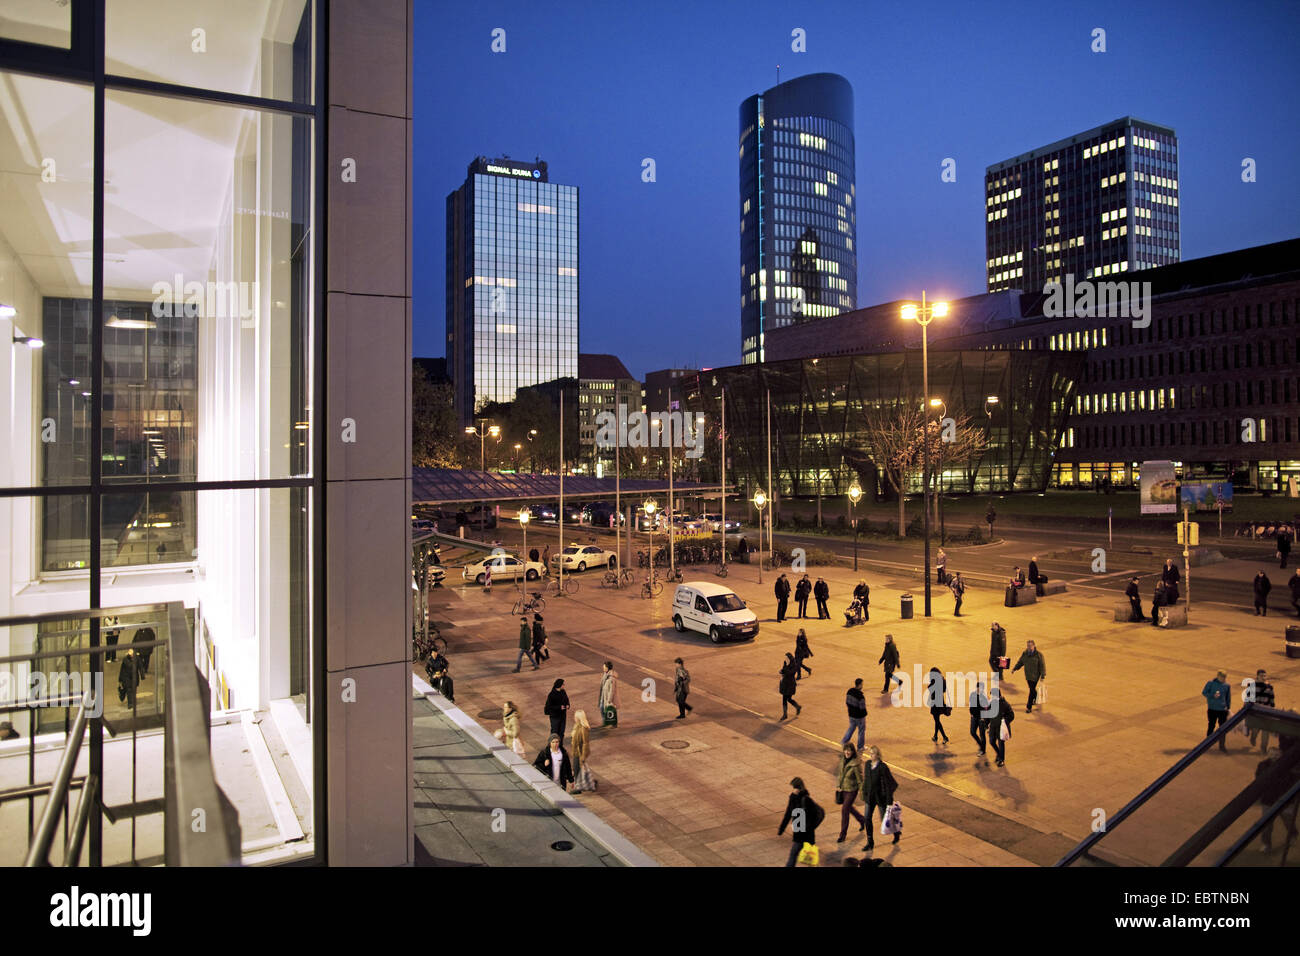 view from central station to inner city, Germany, North Rhine-Westphalia, Ruhr Area, Dortmund - Stock Image